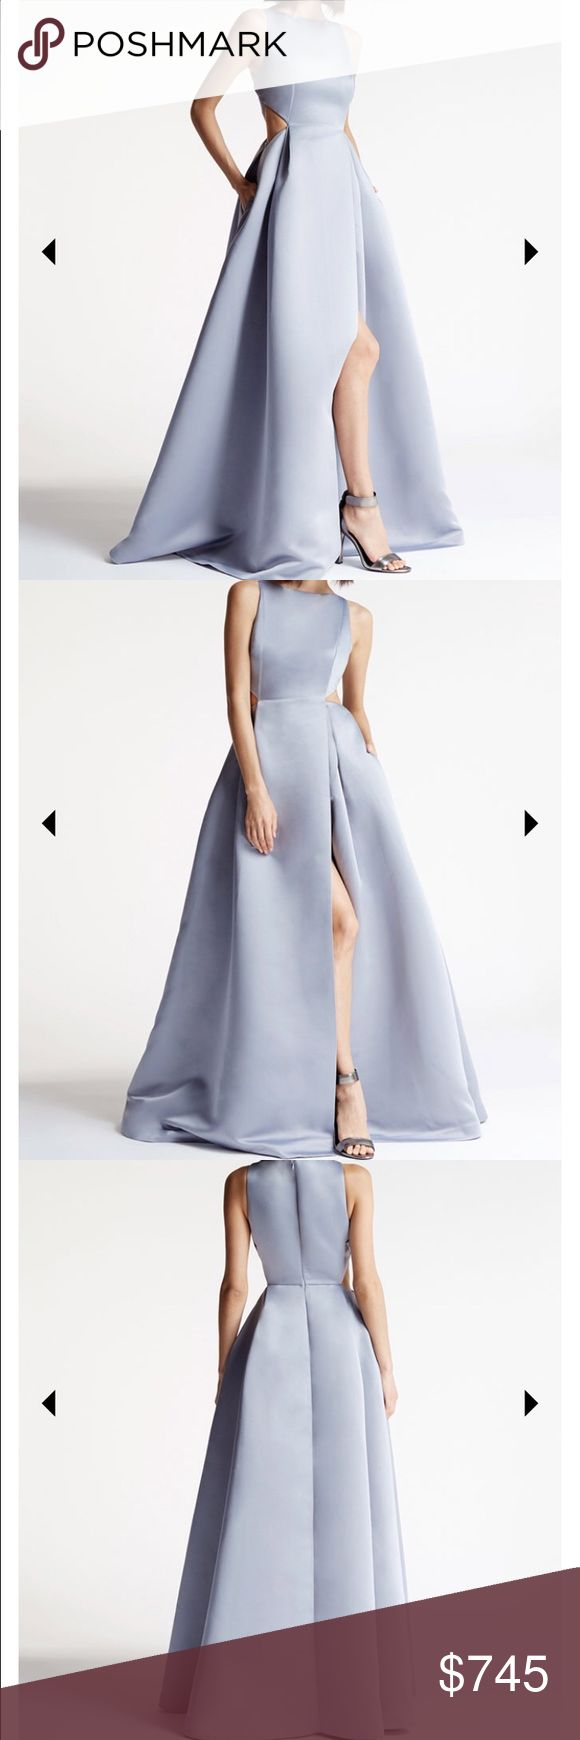 SATIN FAILLE CUTOUT GOWN dress Halston Heritage Halston Heritage long light blue-gray dress , very chic and luxury material , clean , one time use Halston Heritage Dresses Wedding